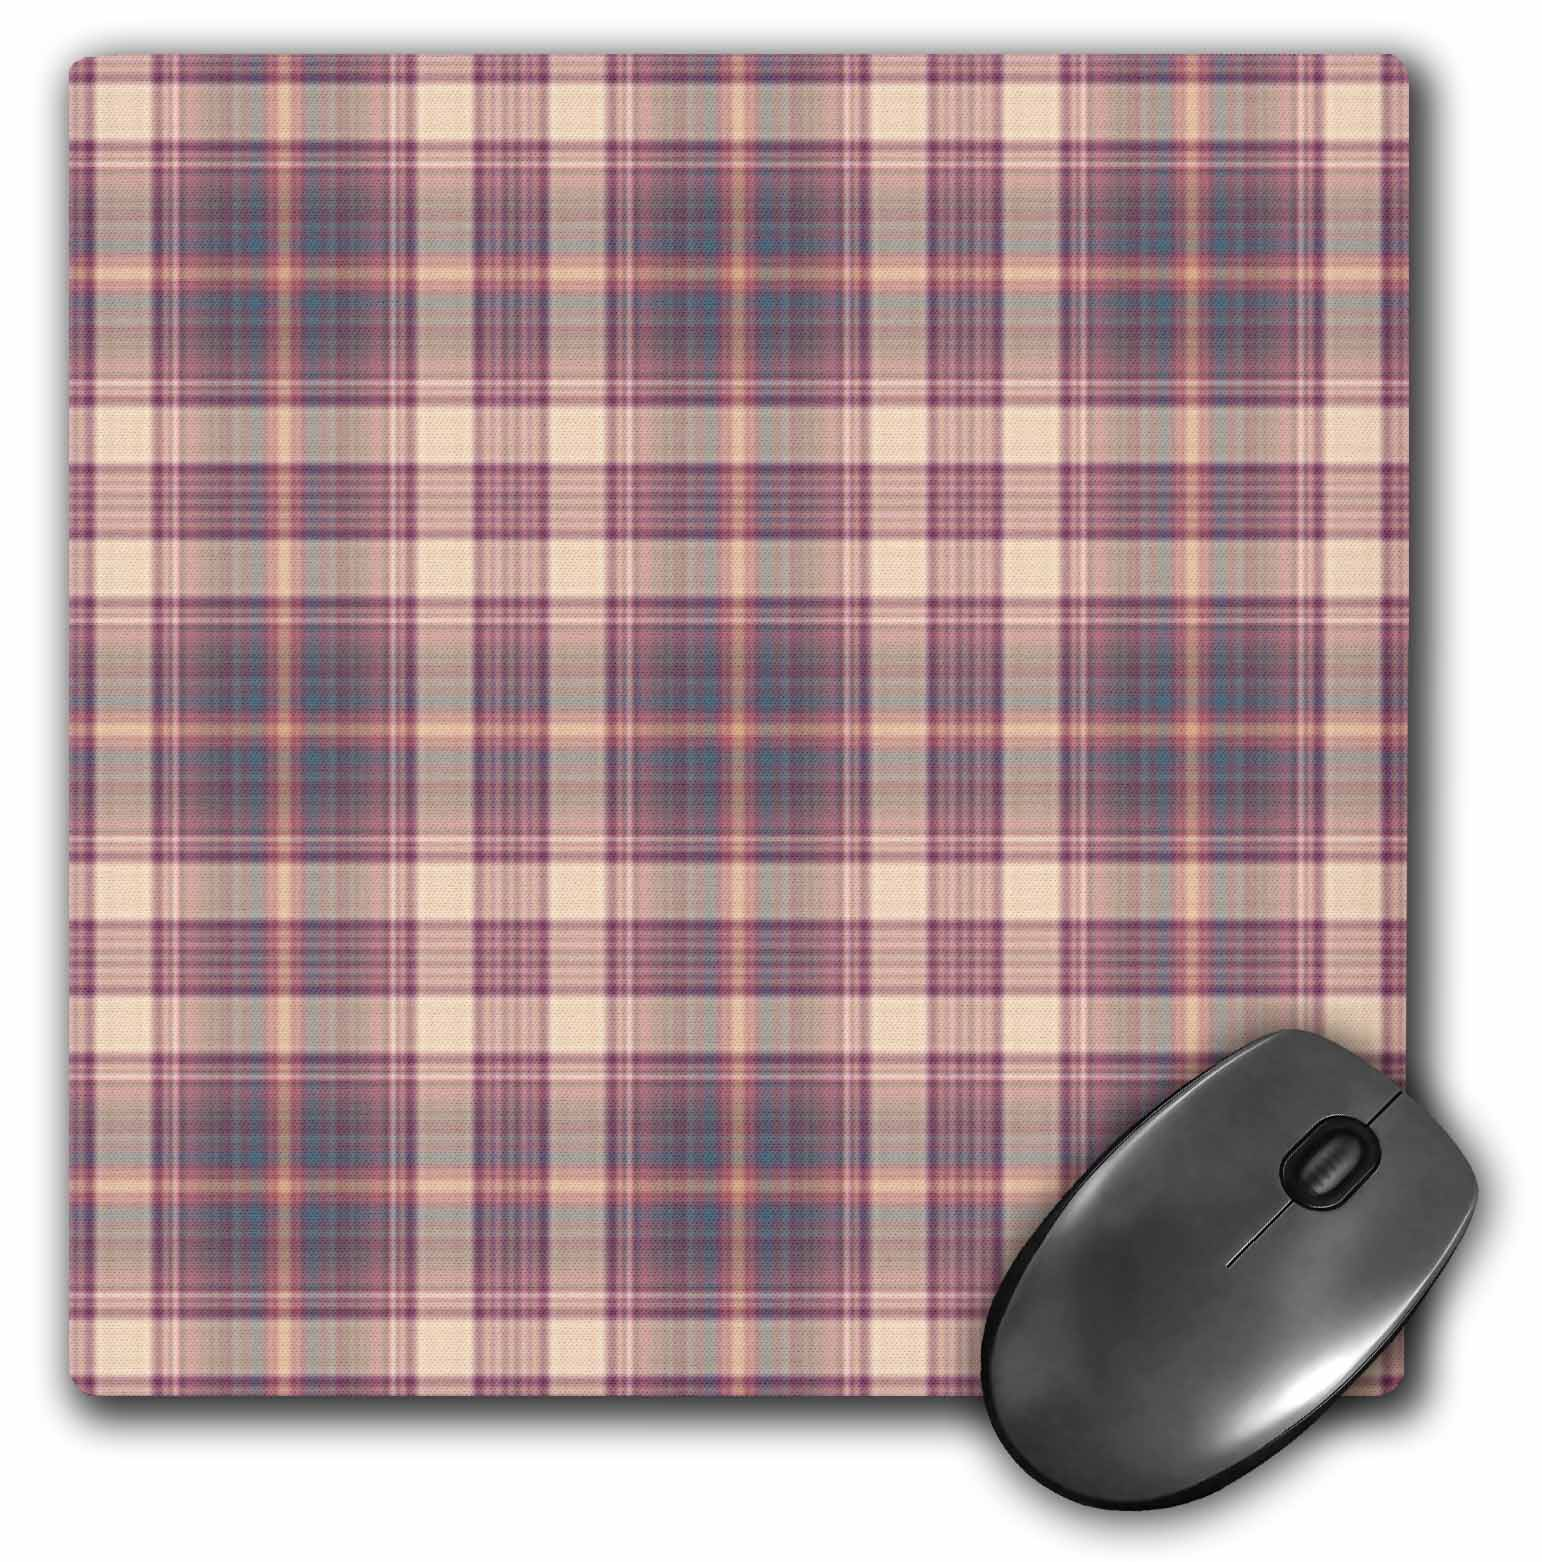 3dRose Blush Pink n Raspberry n Blue Plaid, Mouse Pad, 8 by 8 inches